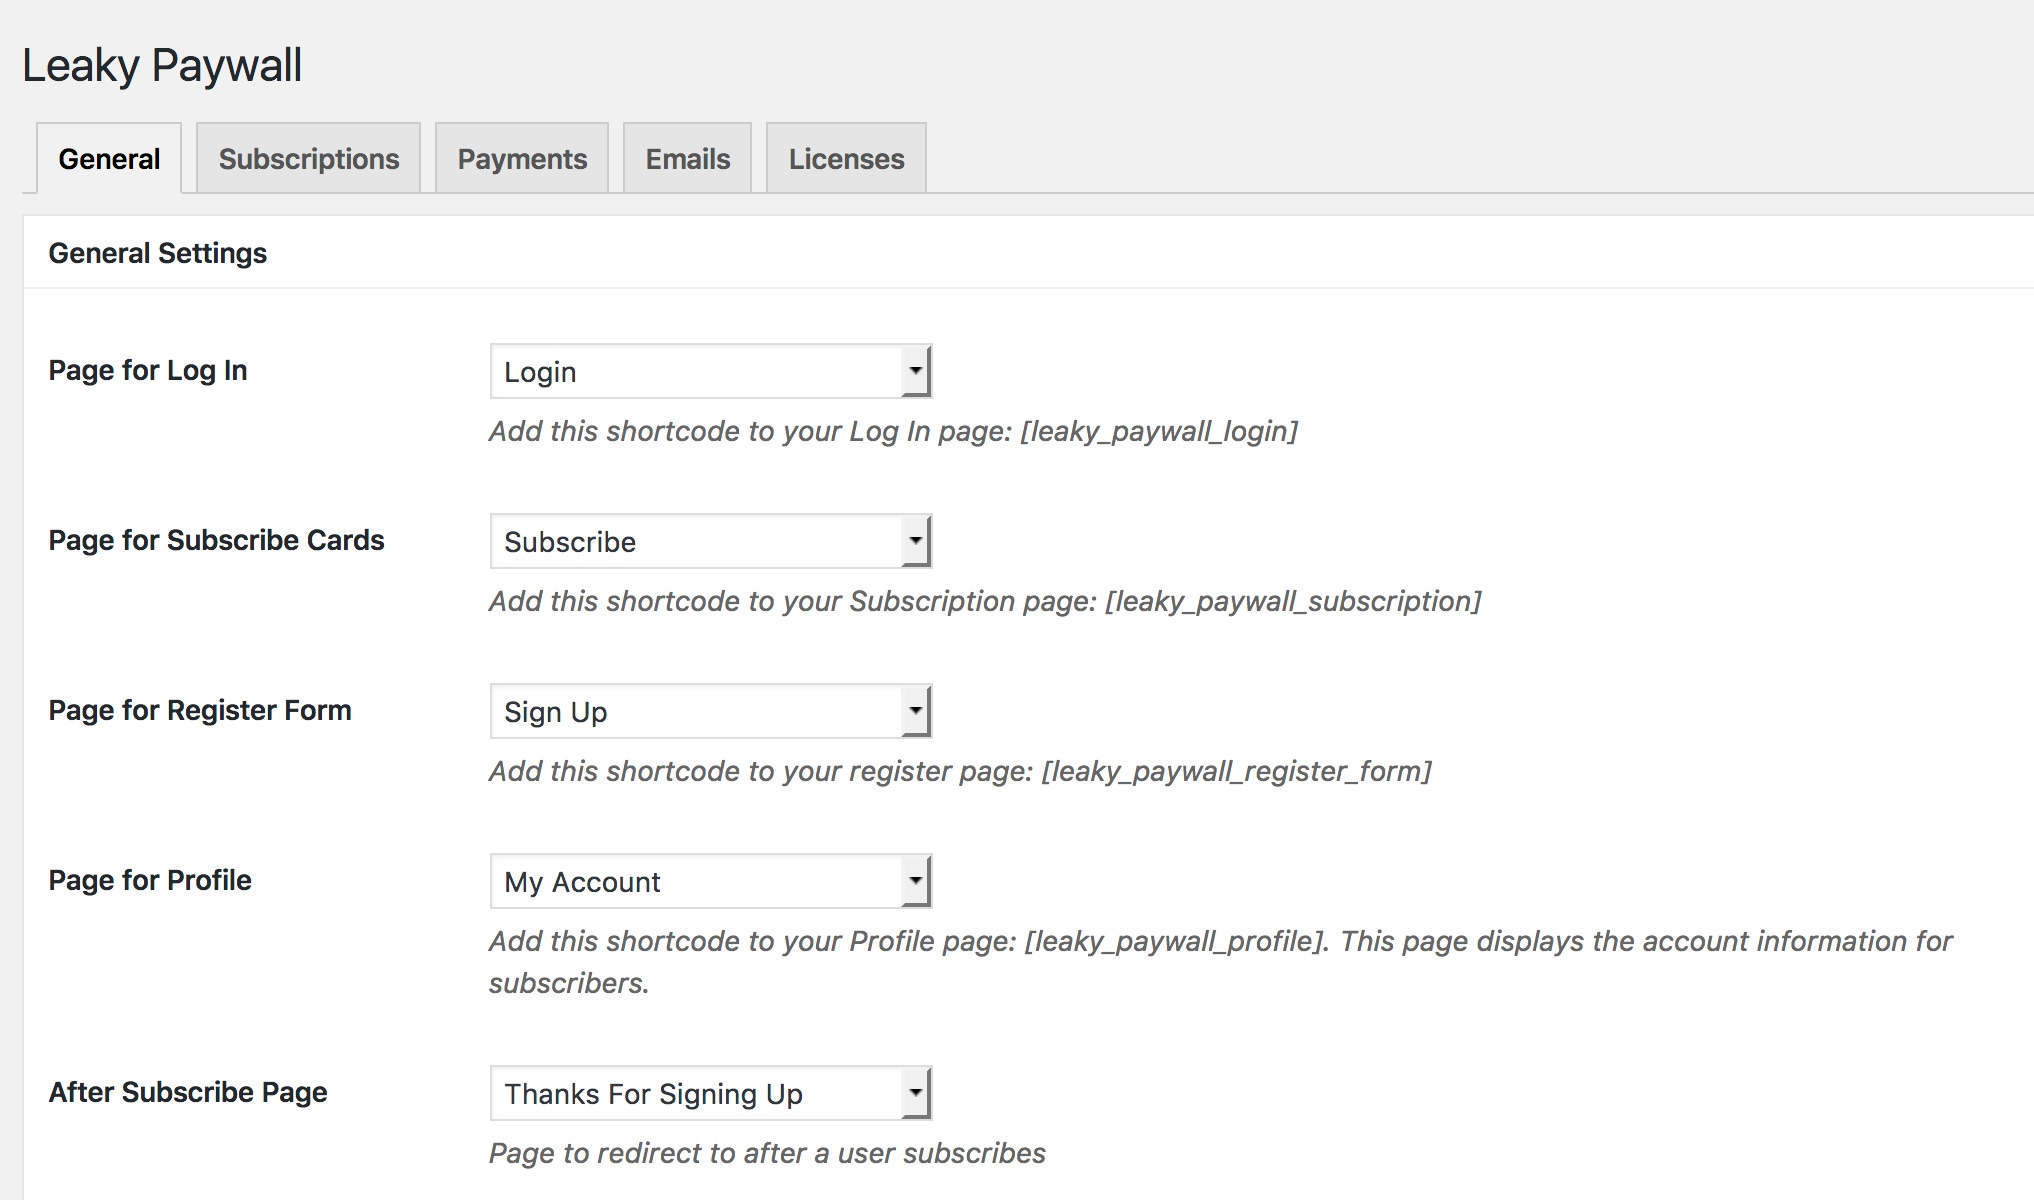 Leaky Paywall general settings